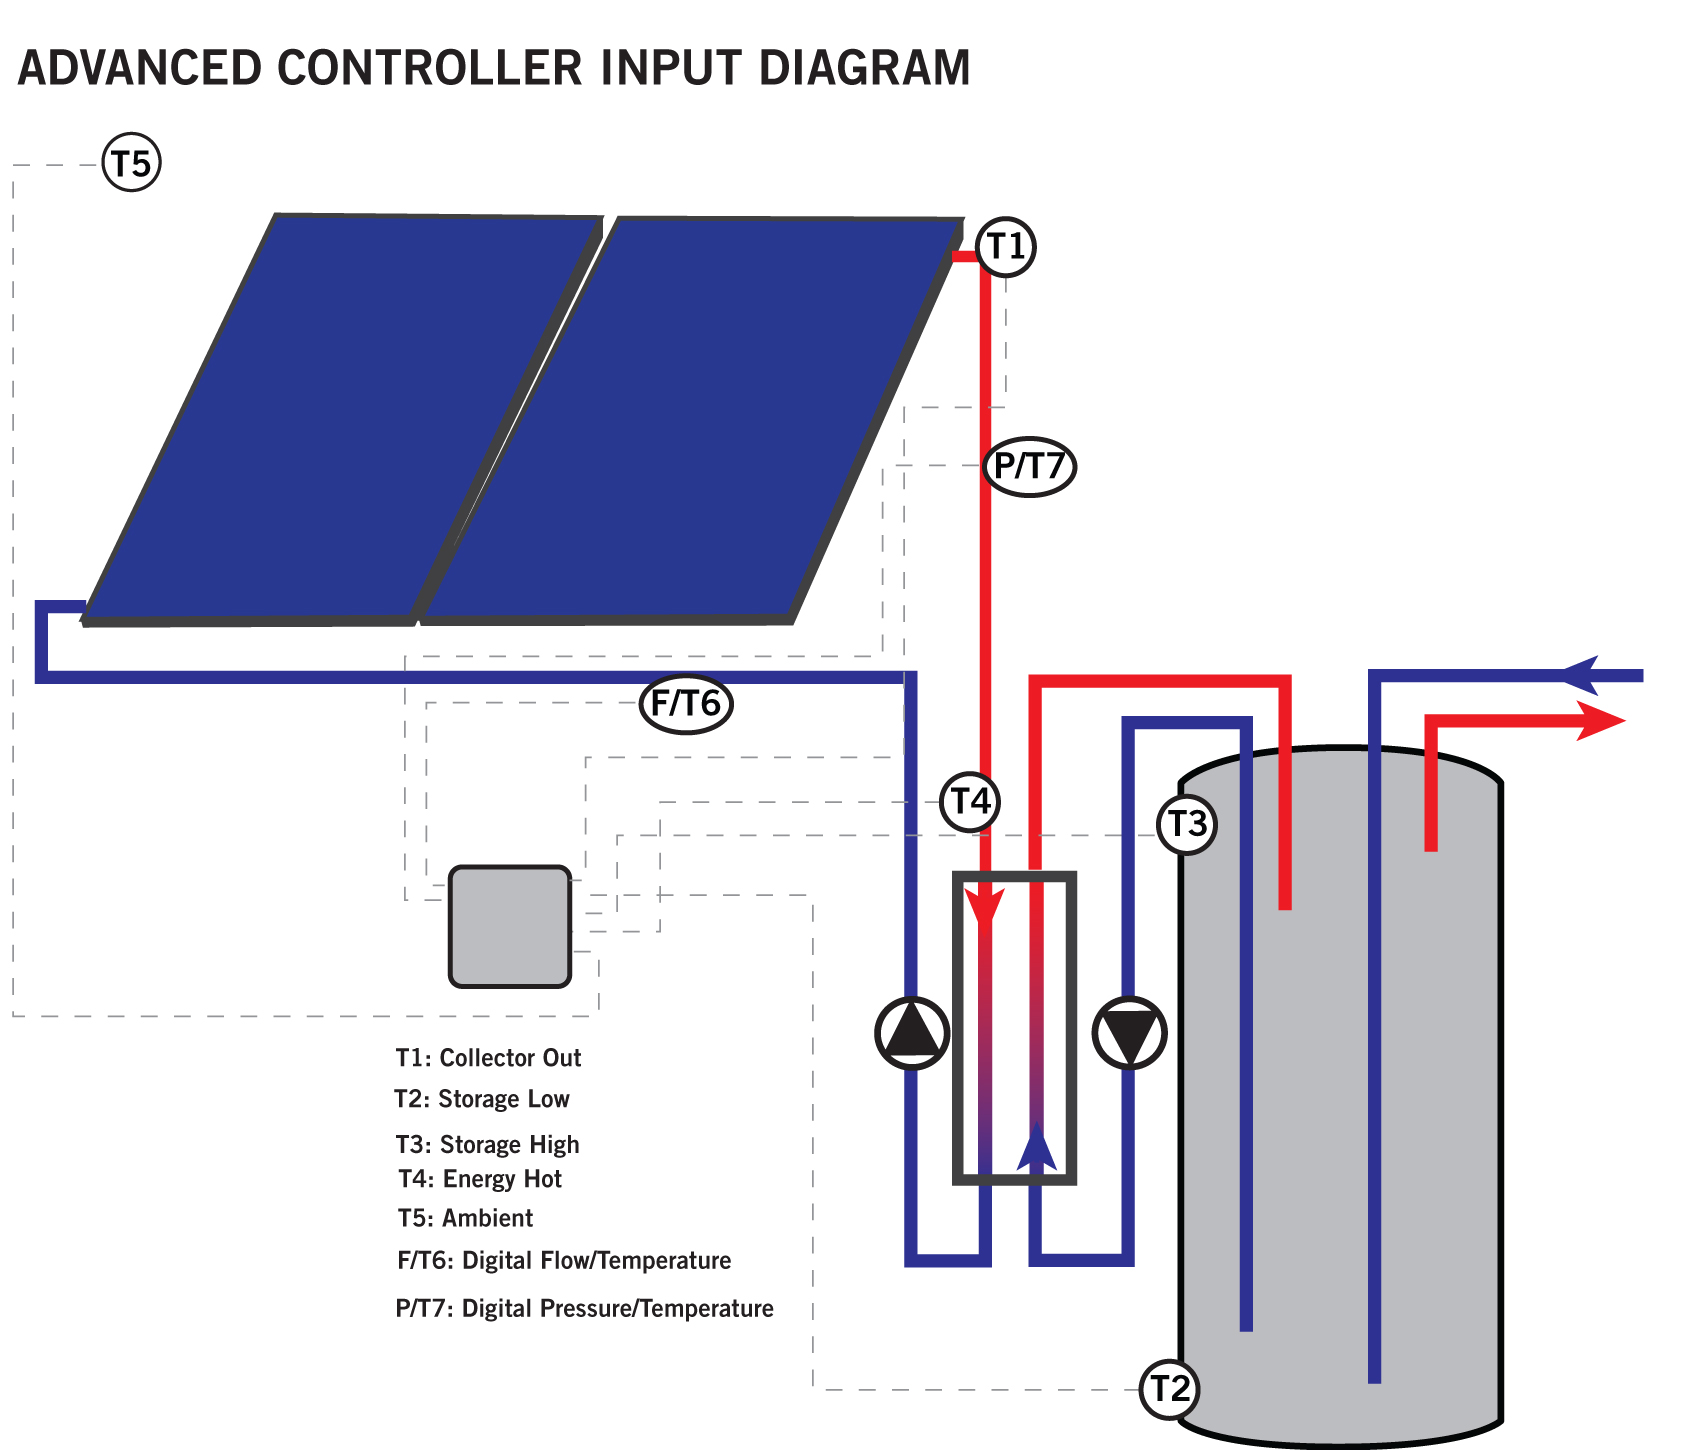 Solar Hot Water Control Units Std How It Works Heat Sensor Automatic Temperature Its Recommended To Compare The Two Types Of Controllers See What Best Matches Your Particular System Needs Feel Free Email Us If You